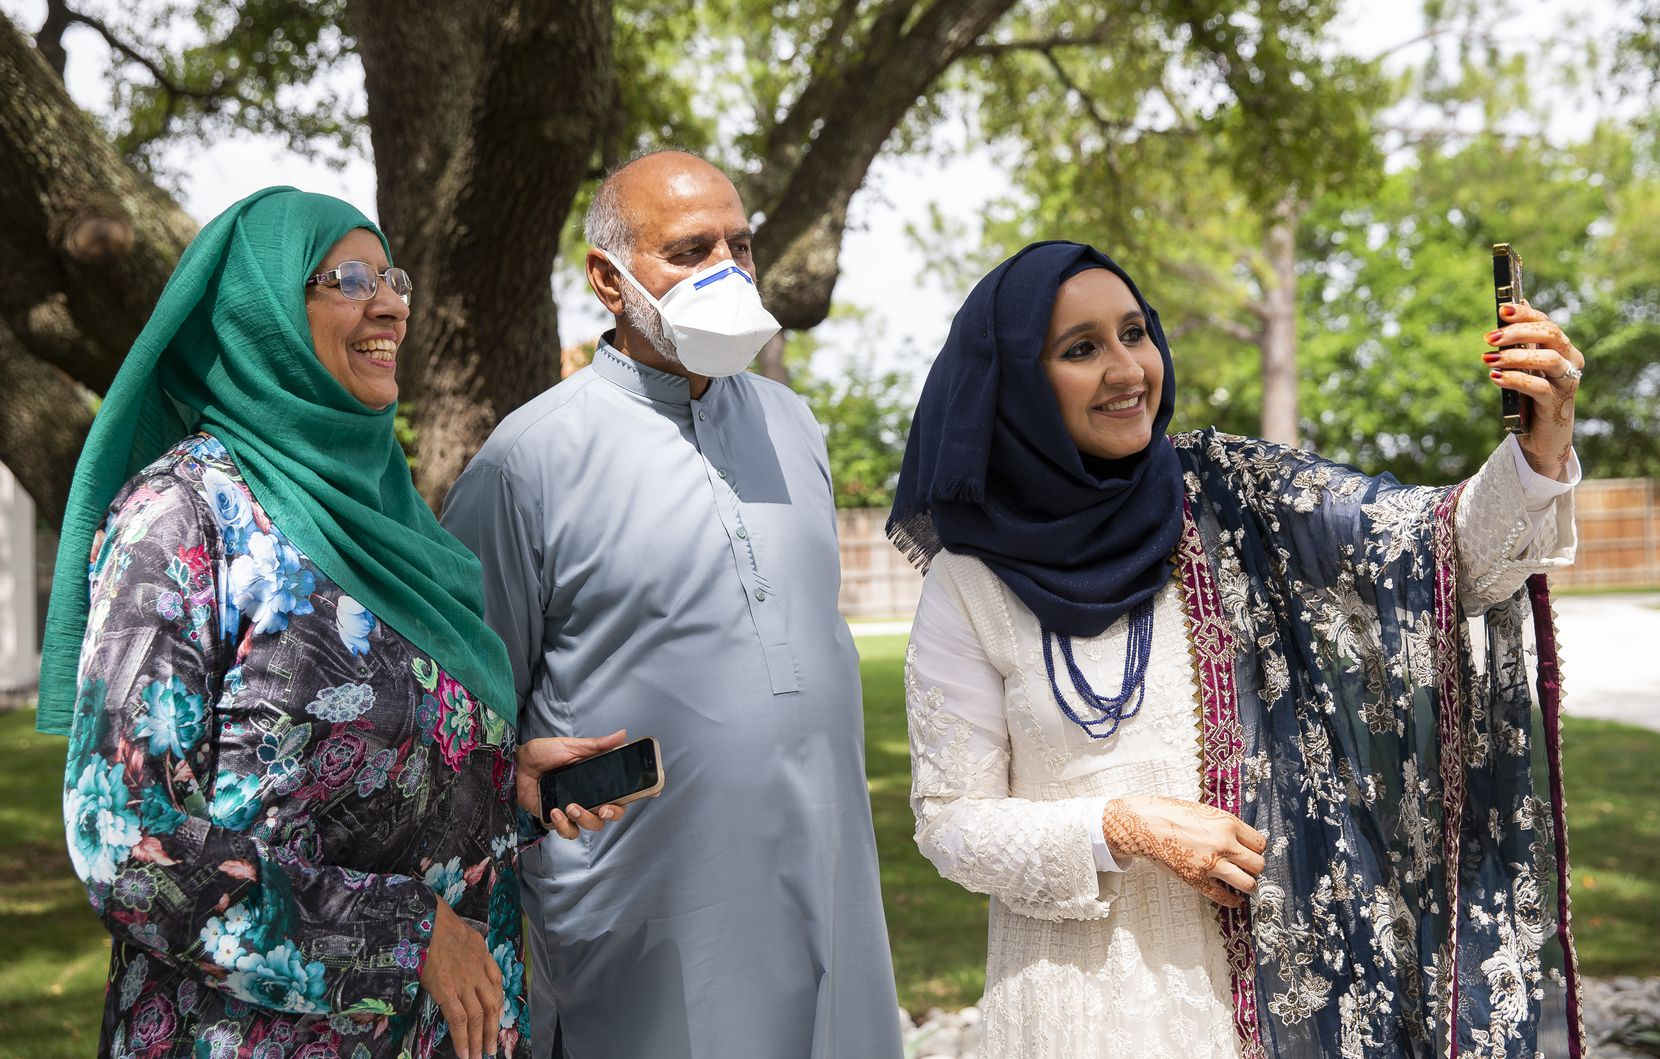 Yasmin Nadeem, (left to right) Nadeem Aziz and daughter Qudsia Nadeem celebrated Eid in Plano on Sunday by video chatting with relatives in Pakistan and Florida.